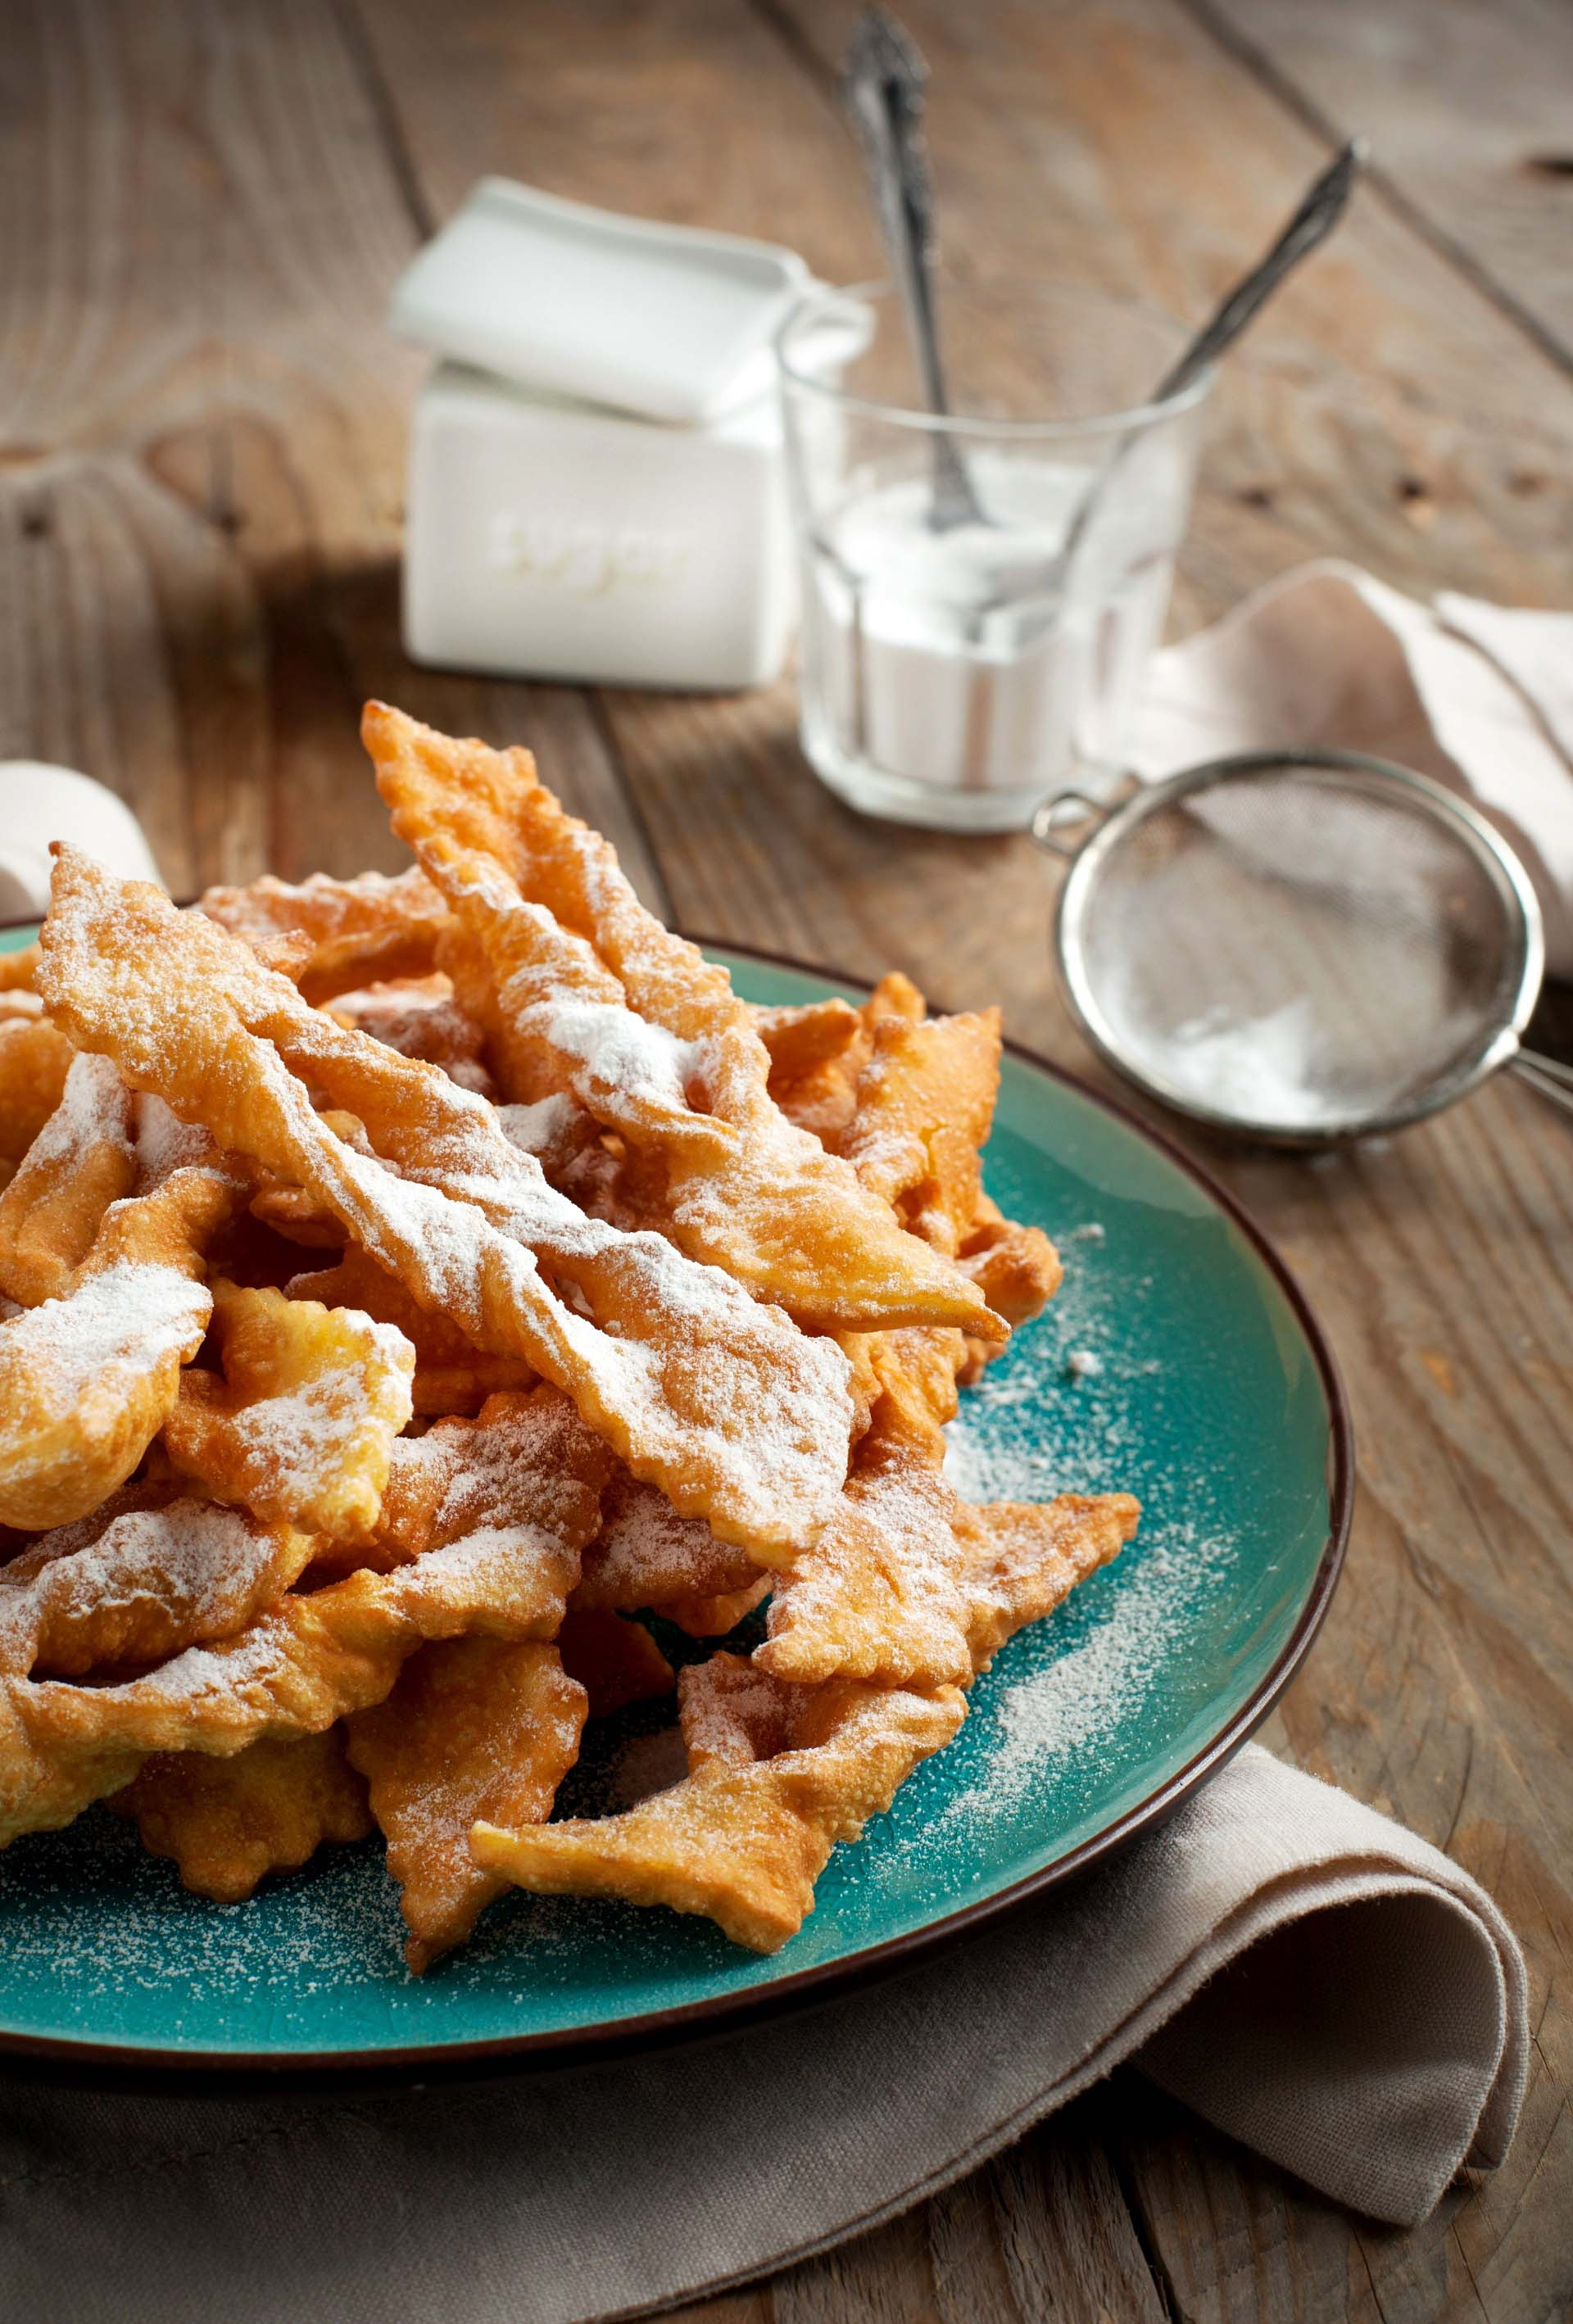 Chiacchiere 1